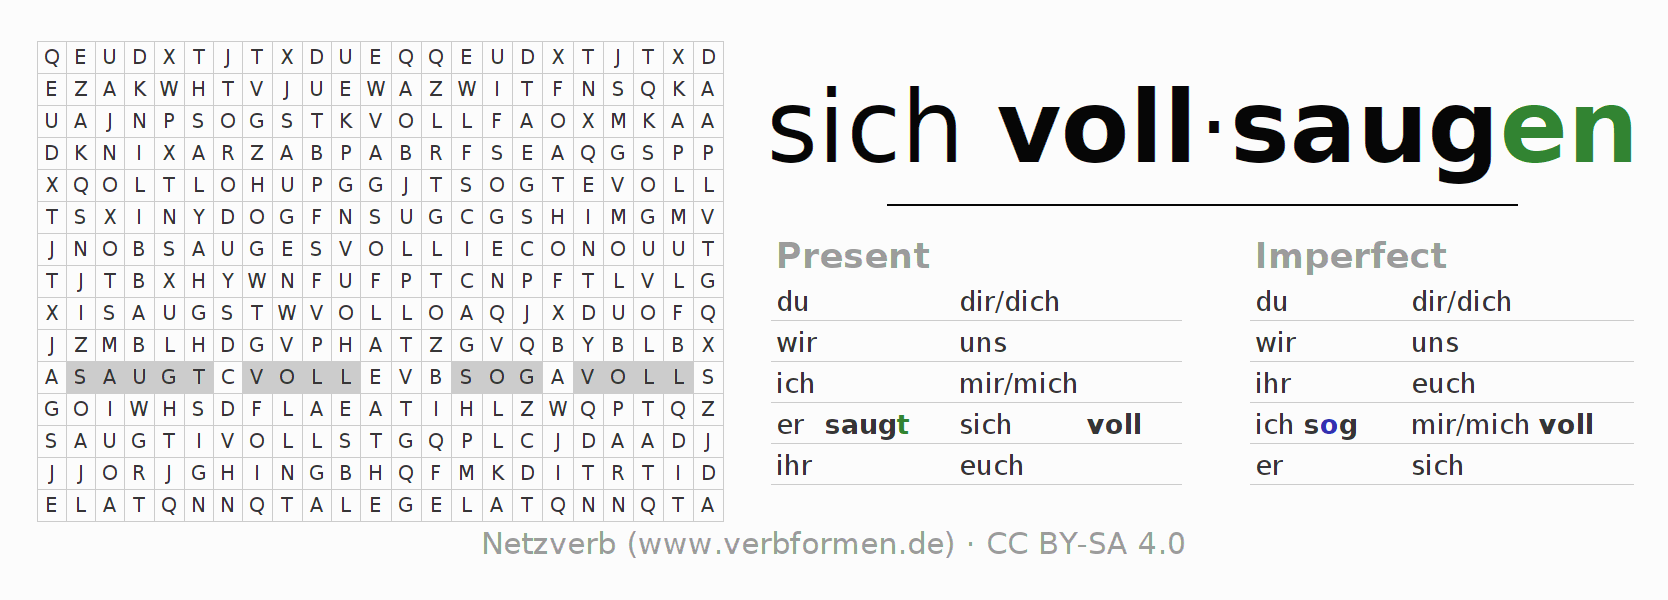 Word search puzzle for the conjugation of the verb sich vollsaugen (unr)